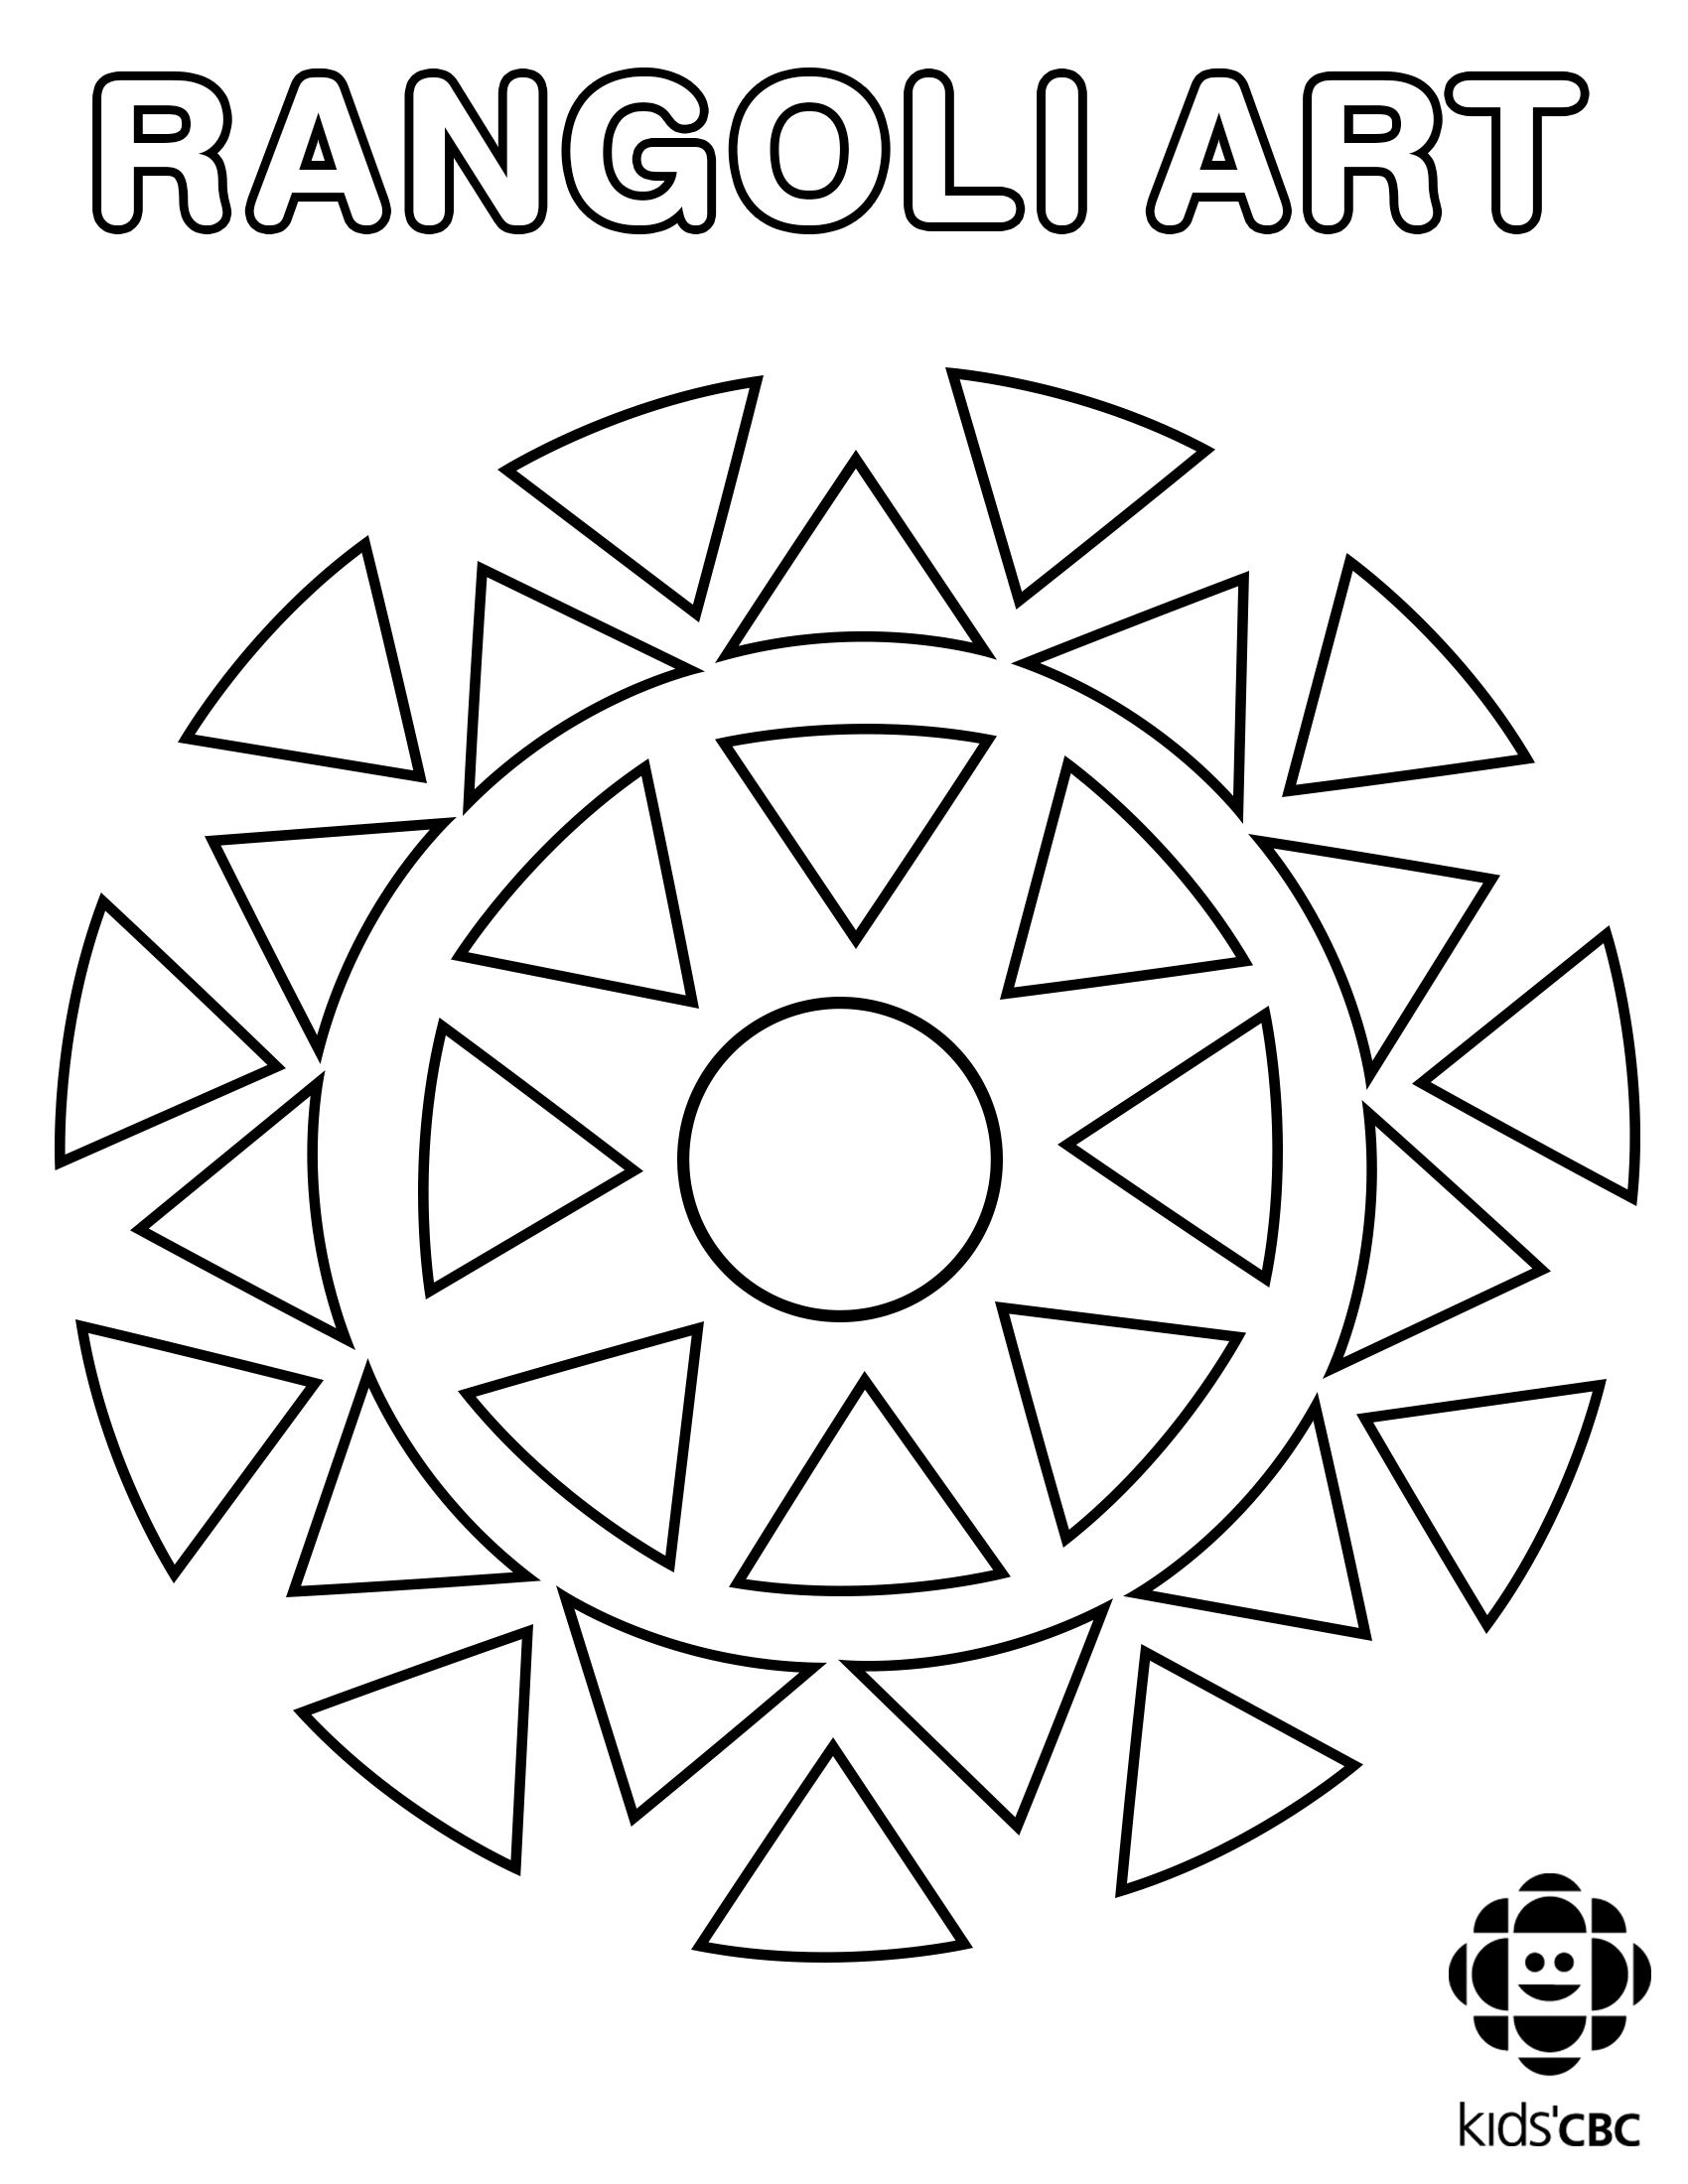 Image result for rangoli patterns black and white